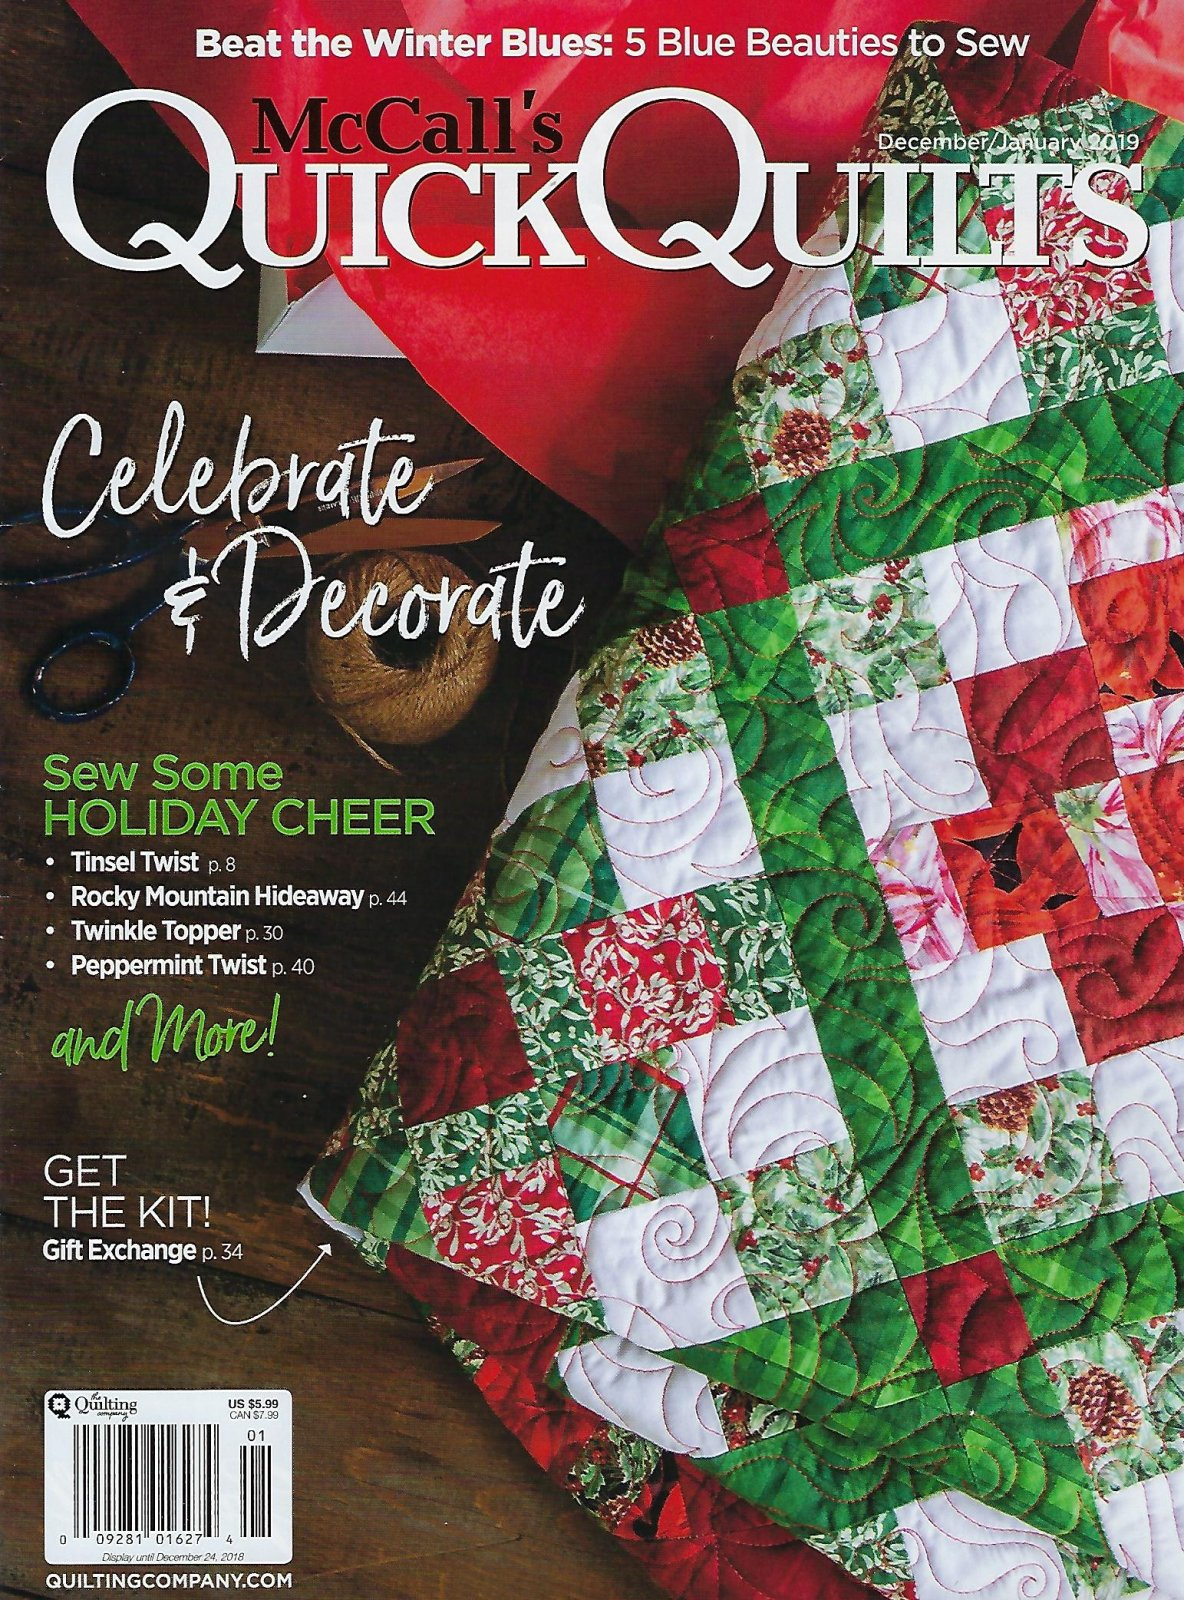 McCall's Quick Quilts December/January 2019